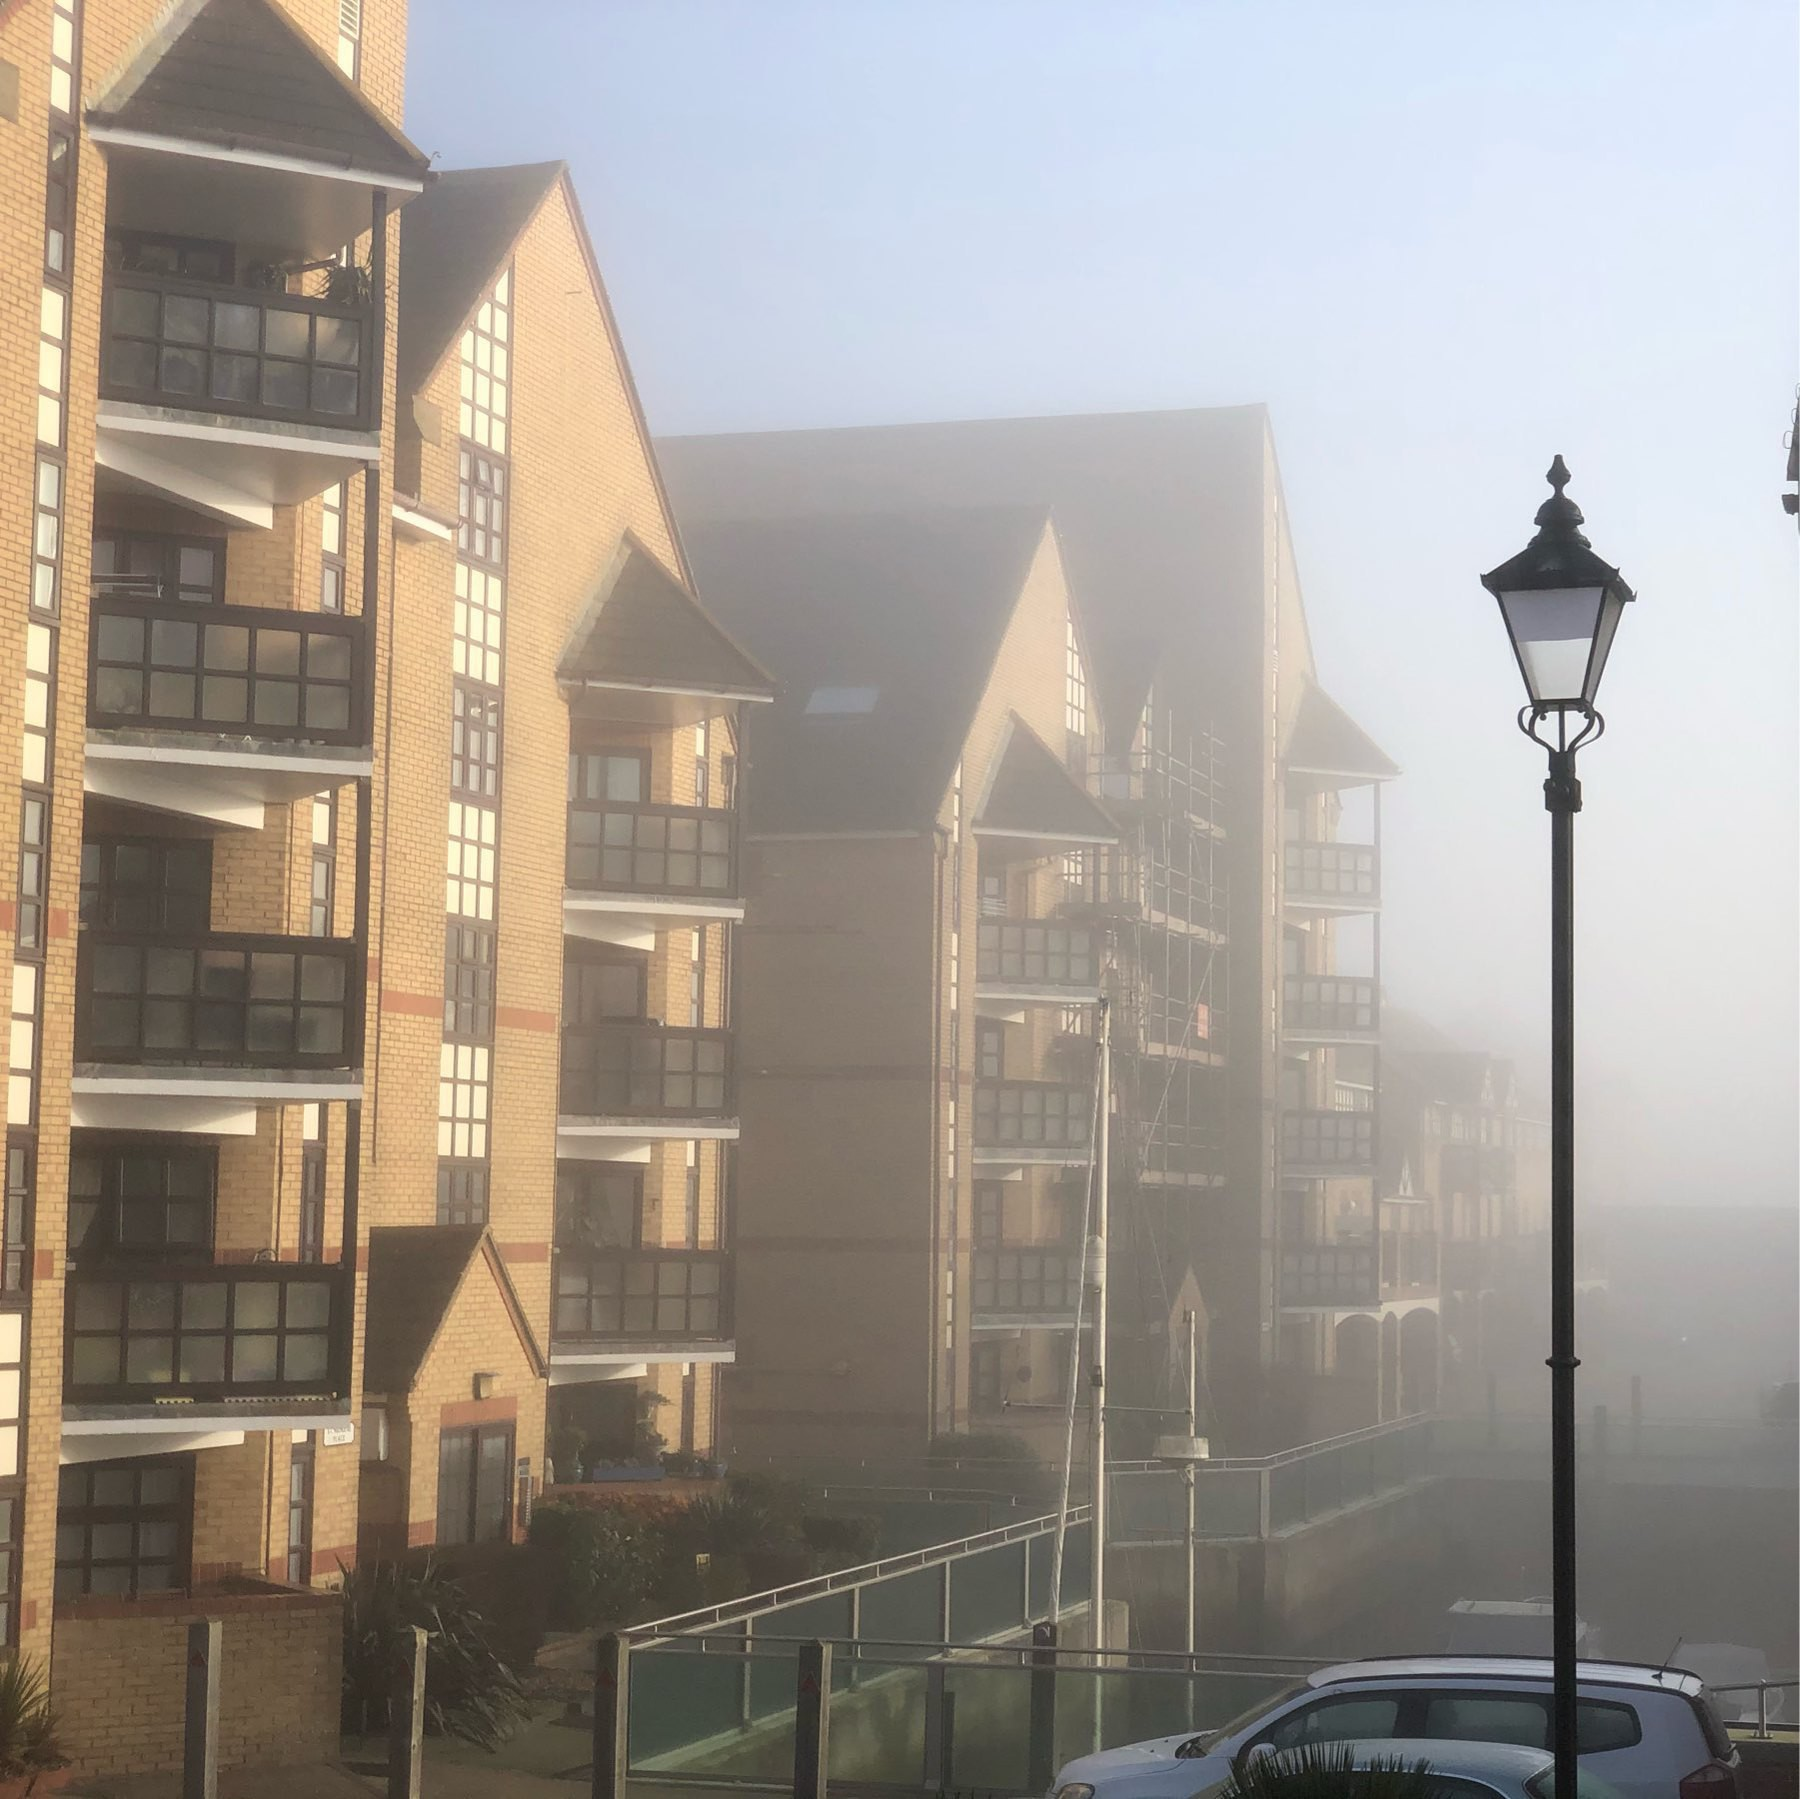 Fog over the Quay in Emerald Quay.